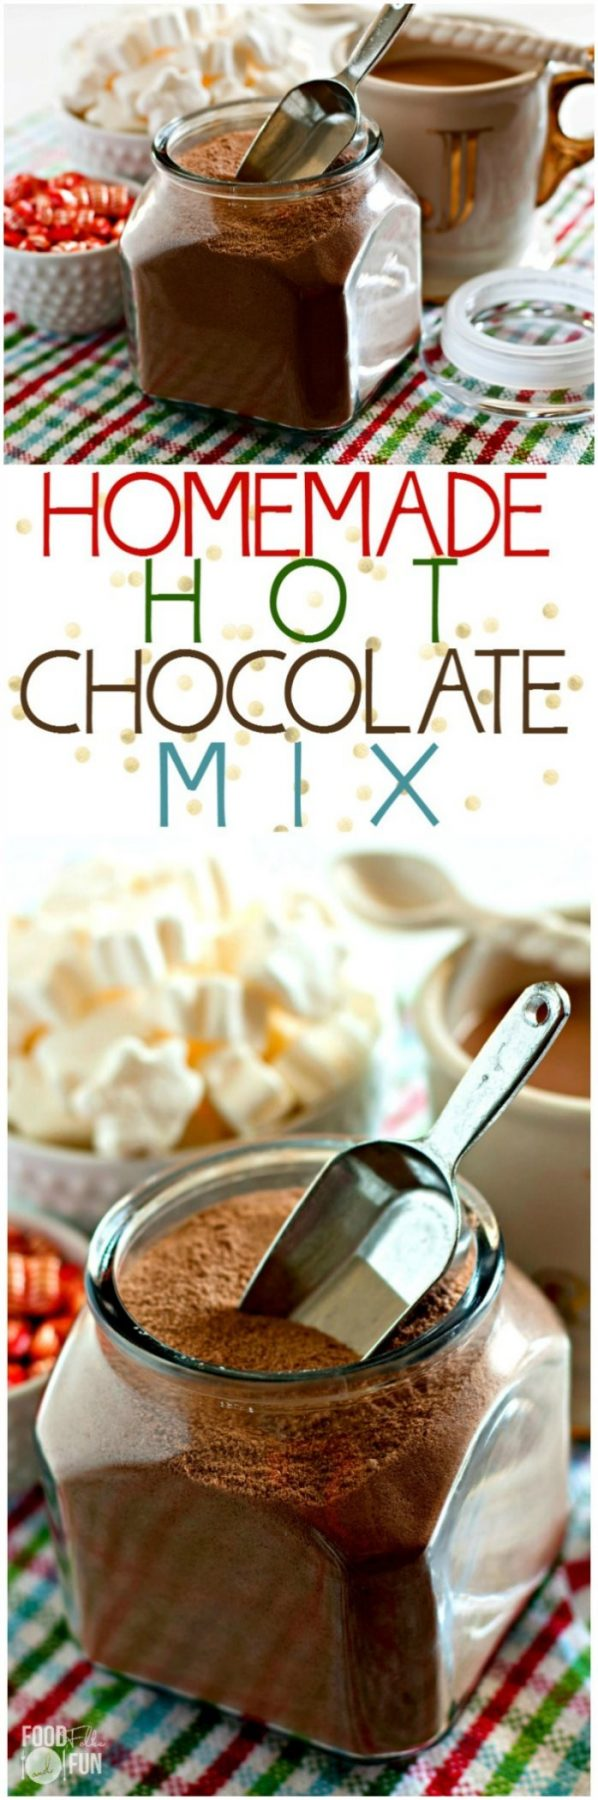 This homemade hot chocolate mix makes a rich, indulgent, chocolaty treat. It is SO easy to make, let me show you how to make it along with 4 flavor variations! via @foodfolksandfun